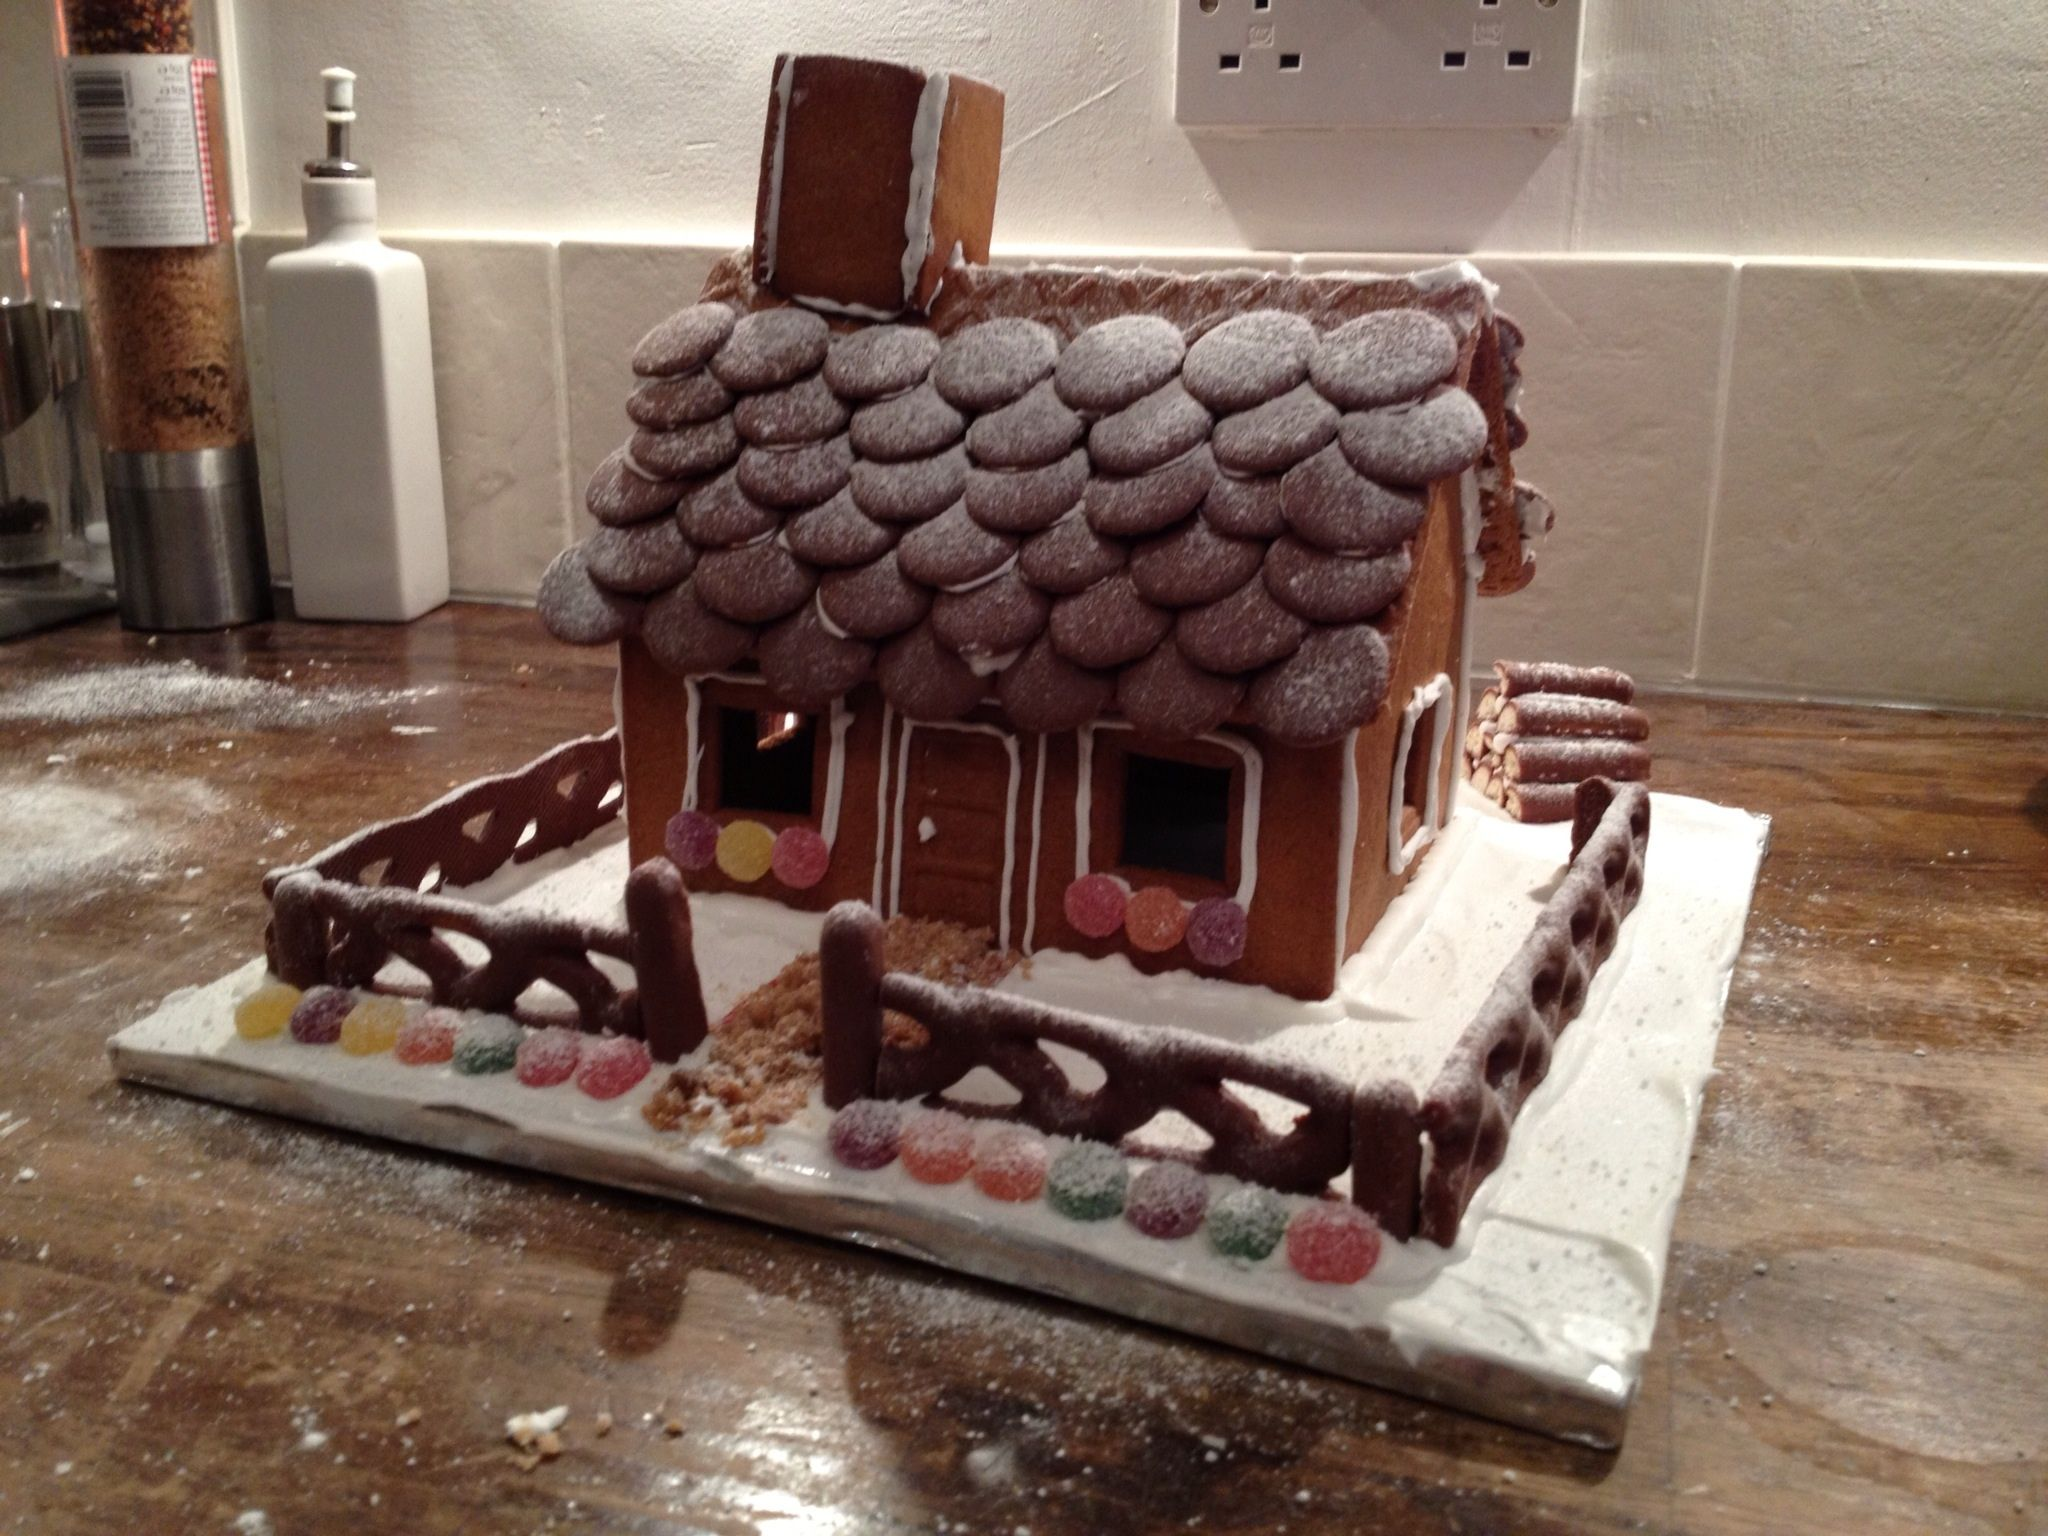 Decorated Flat Pack Ikea Gingerbread House Ikea Gingerbread House Christmas Gingerbread House Gingerbread House